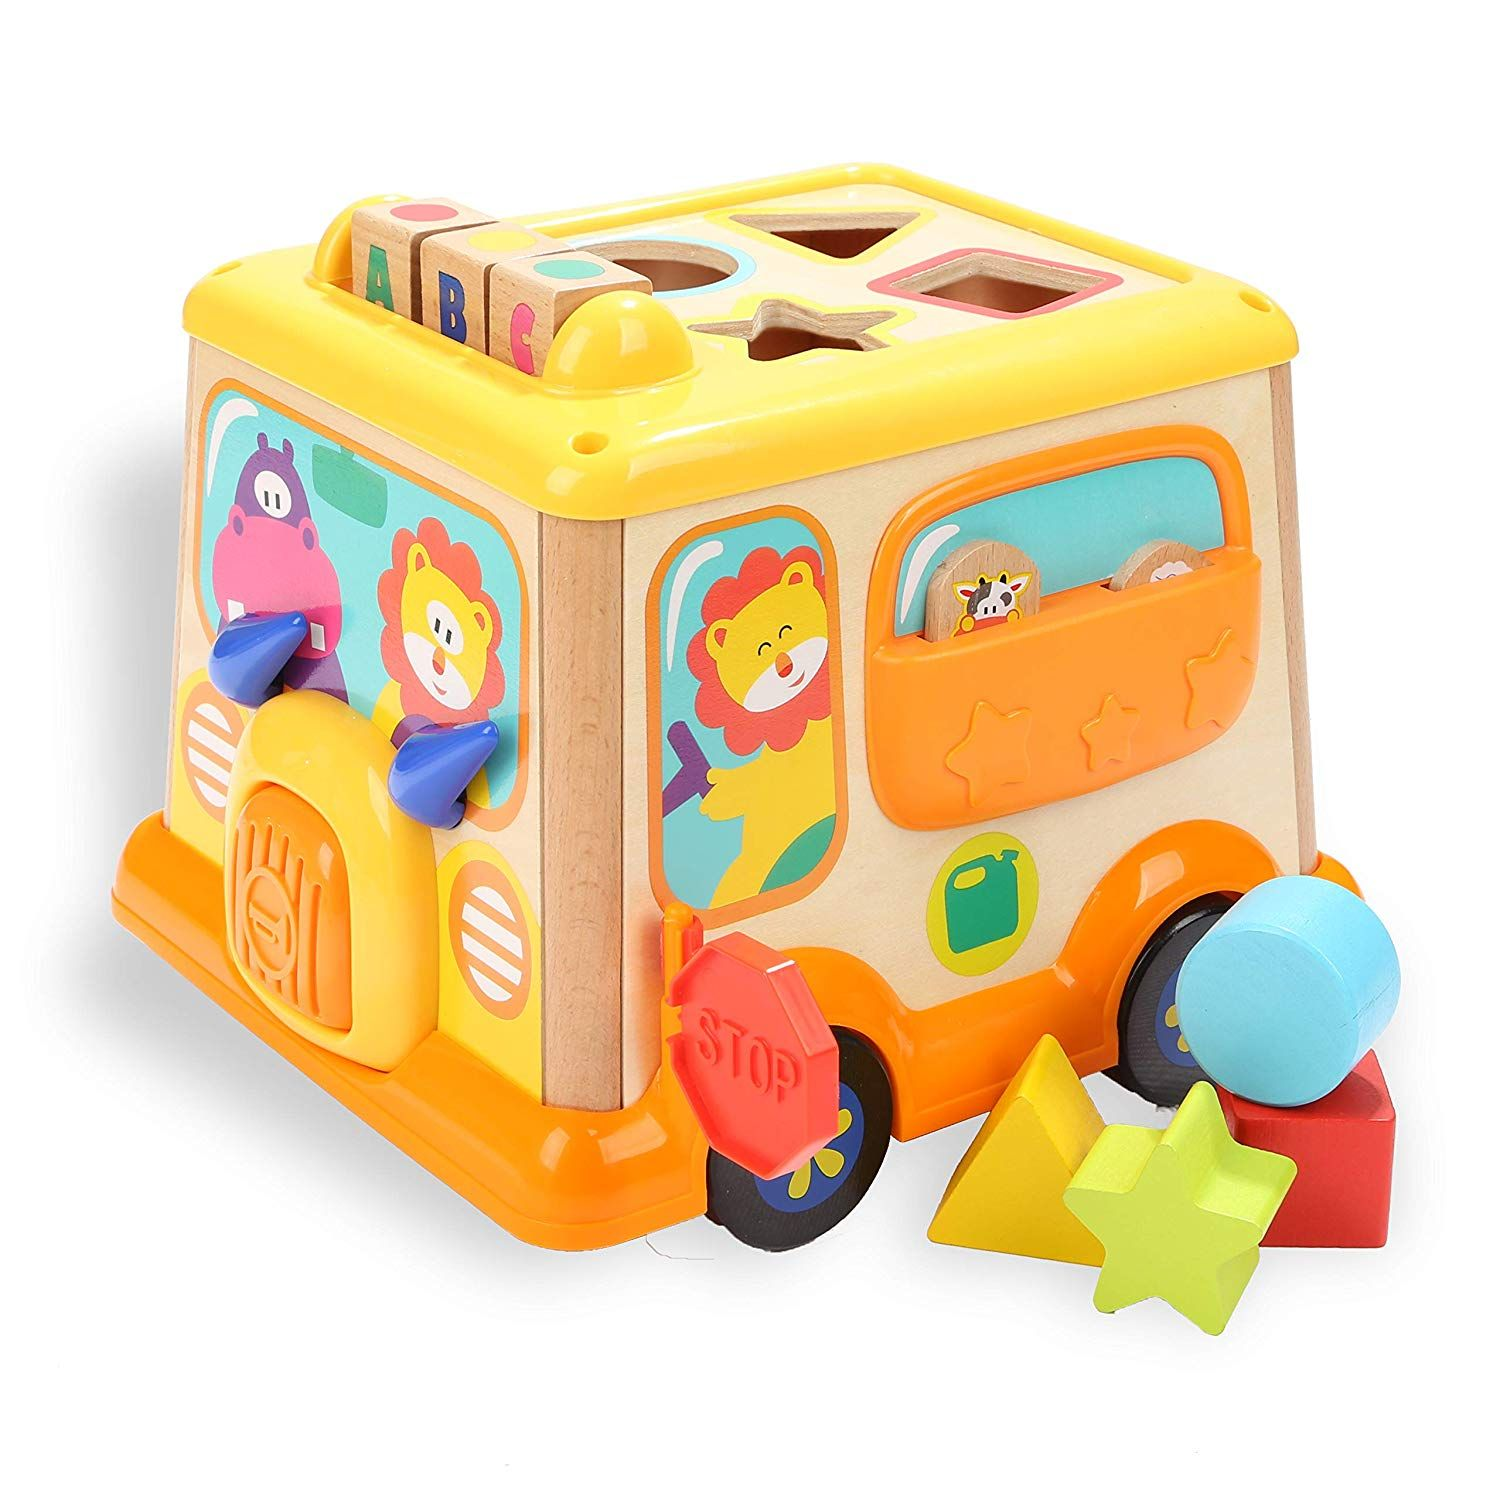 TOP BRIGHT Activity Cube Toys Baby Wooden Educational ...